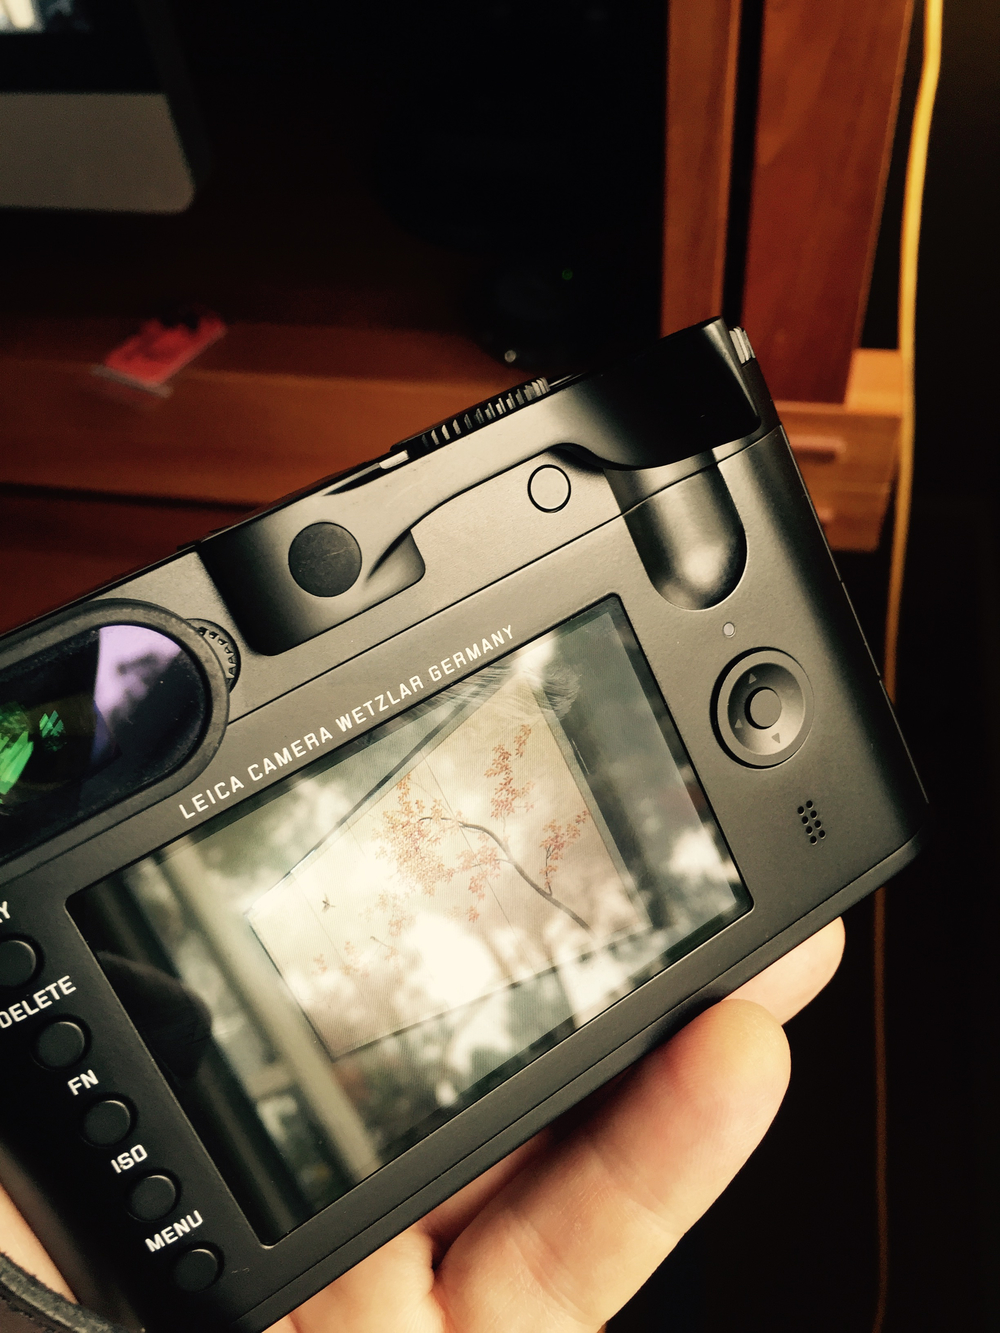 Thumbs Up for Leica Q, 2015.